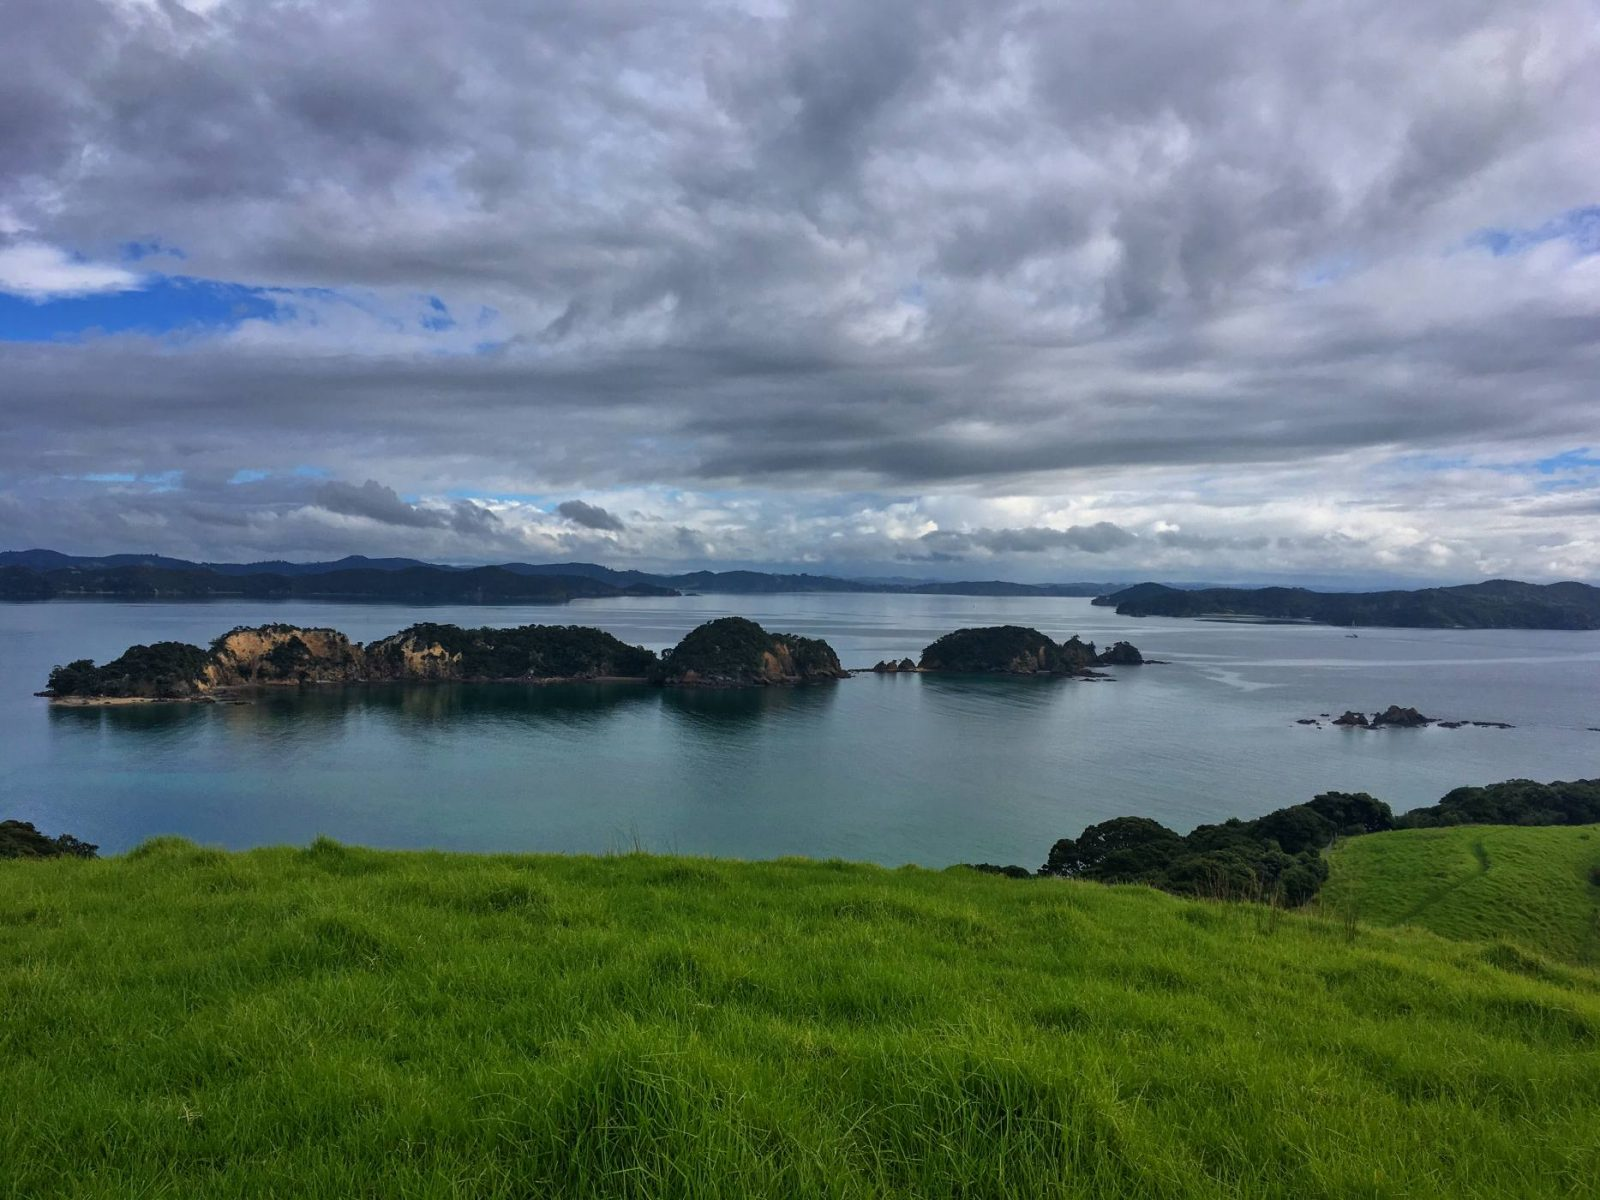 27 Photos That'll Make You Want to Visit New Zealand's North Island